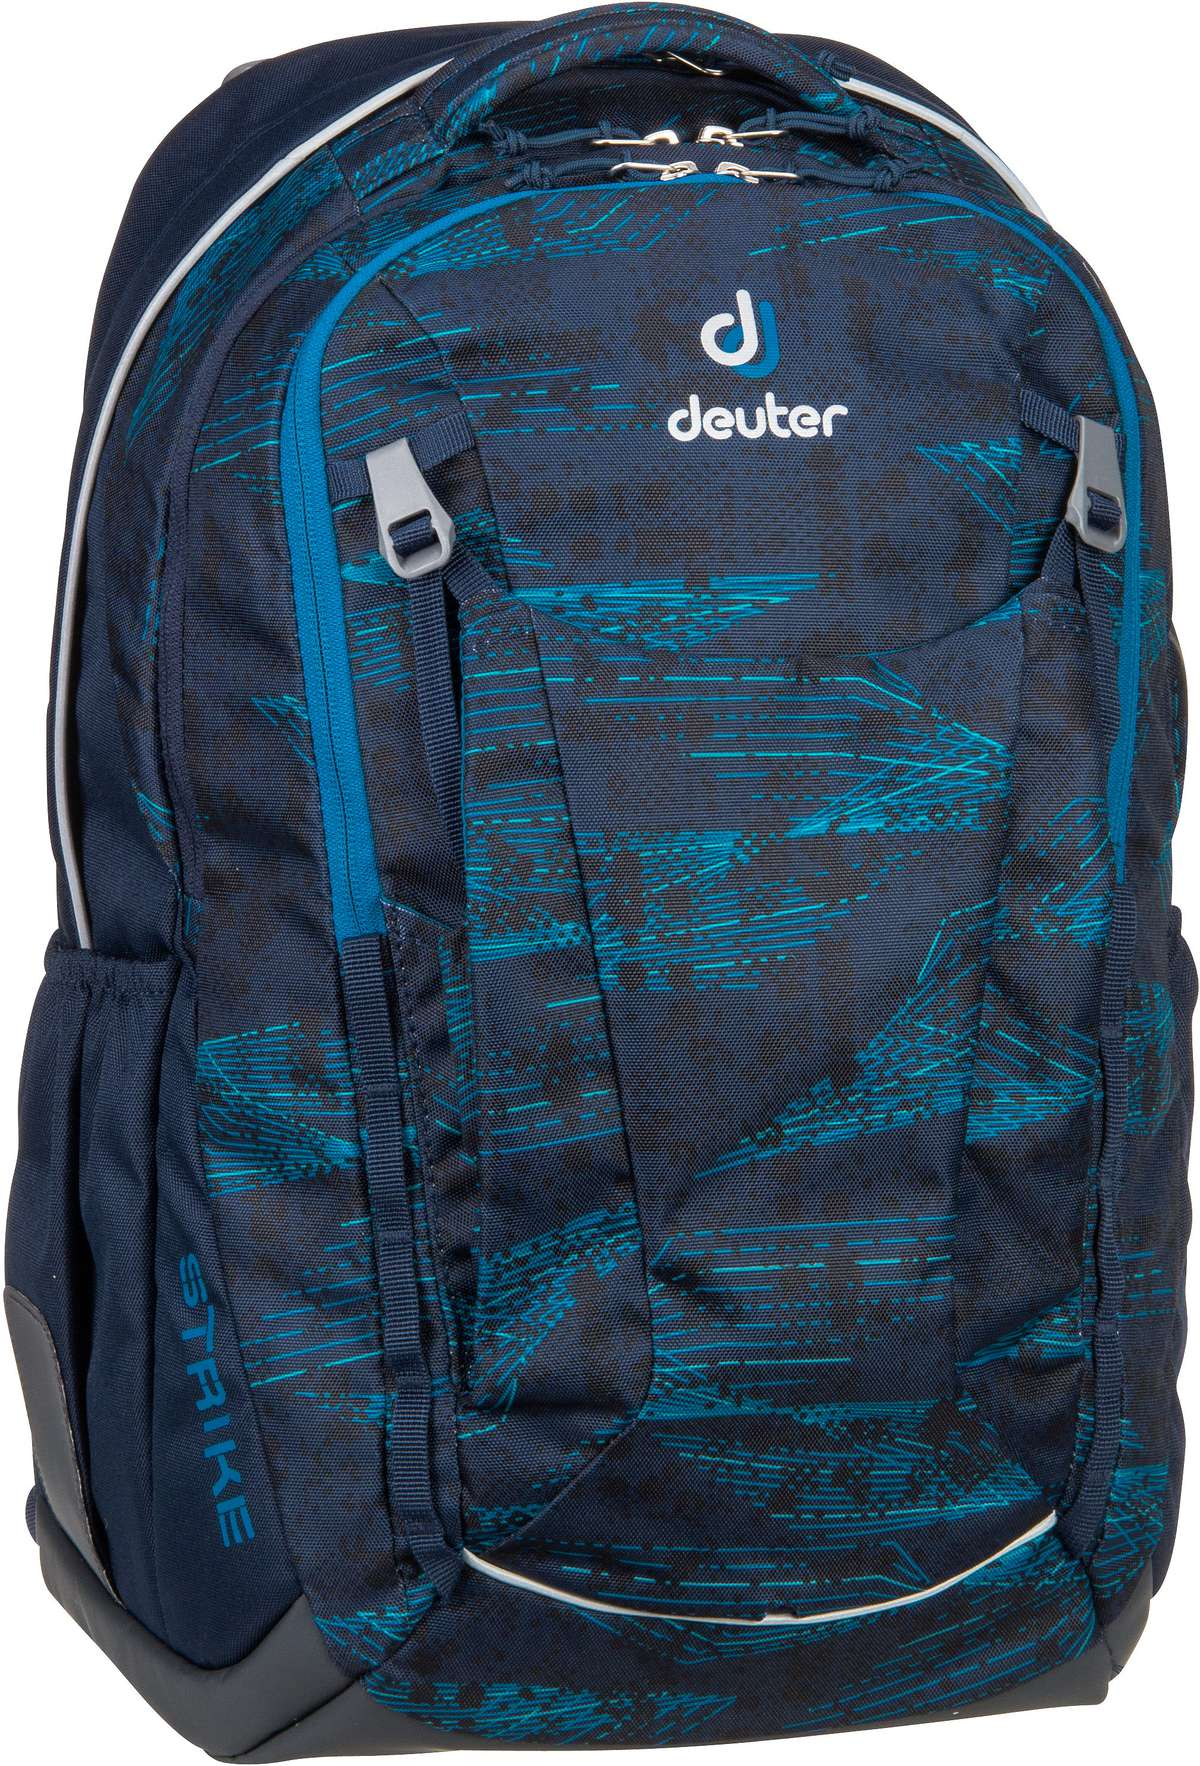 Rucksack / Daypack Strike Midnight Space (30 Liter)